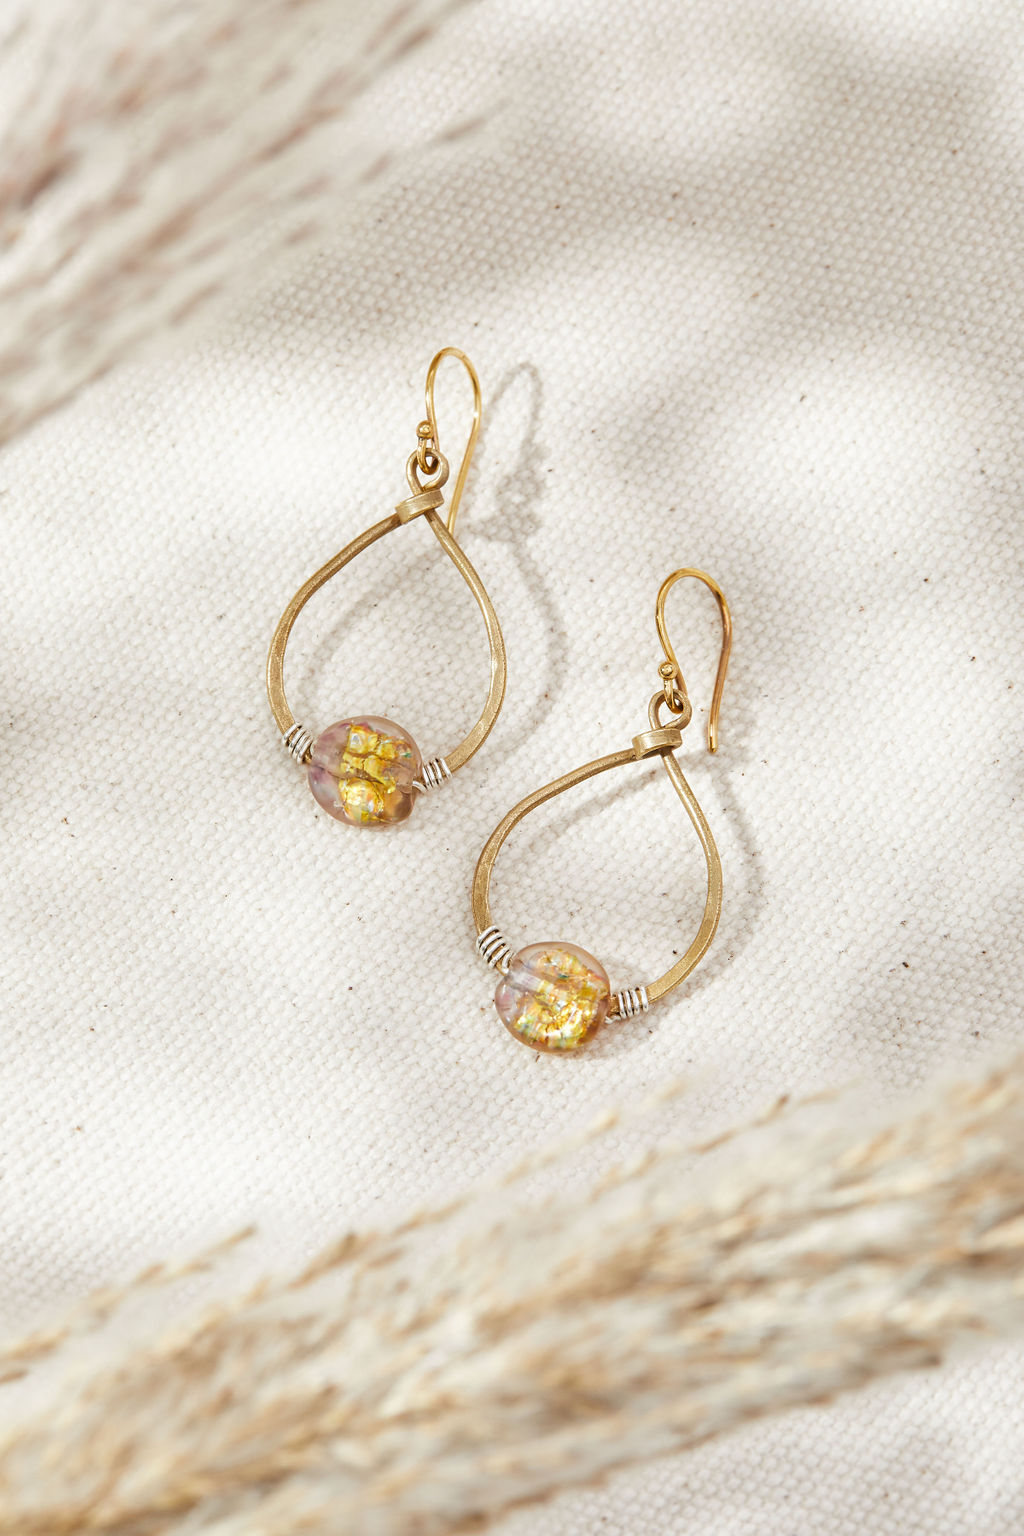 Fire Opal Small Teardrop Hoops - Lamp work glass, bronze